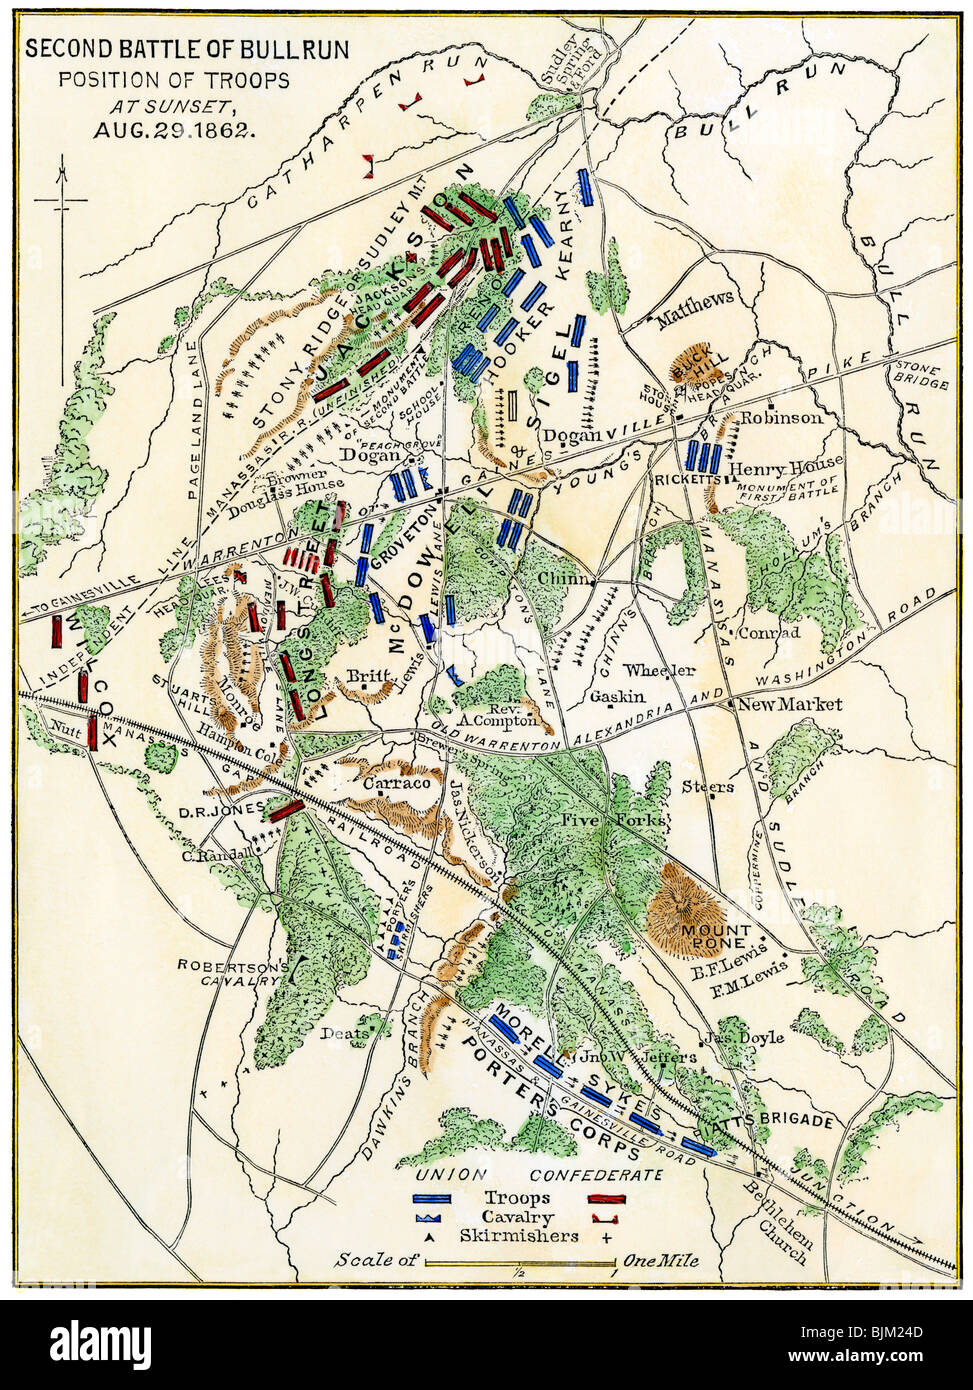 Bull Run battlefield map showing troop positions on August 29, 1862. Hand-colored woodcut - Stock Image